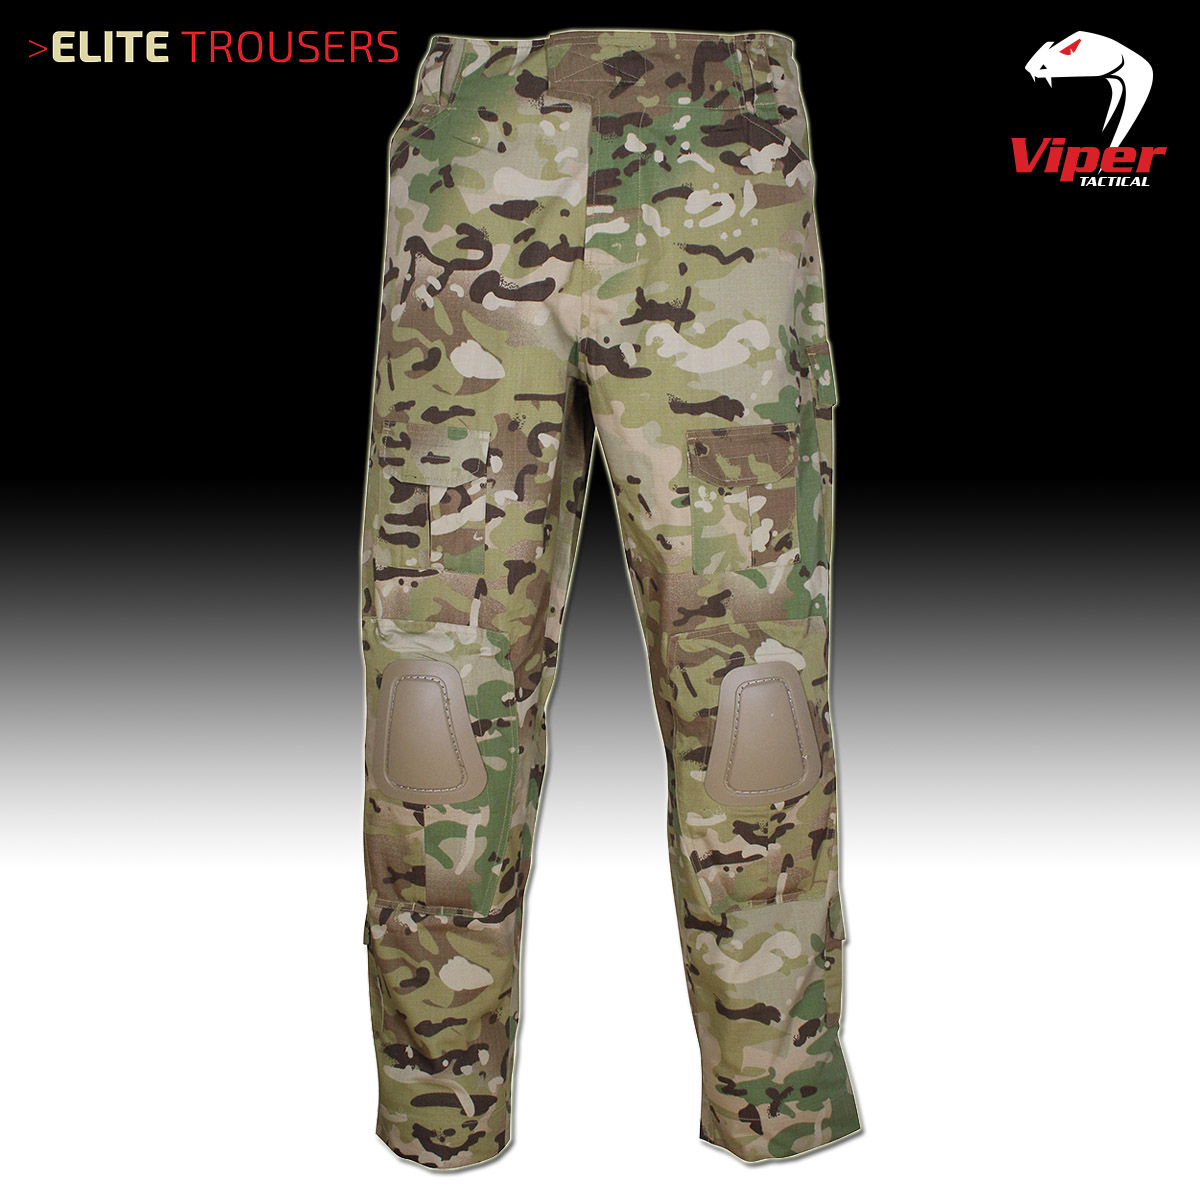 Viper goes Tactical with new Elite Trousers